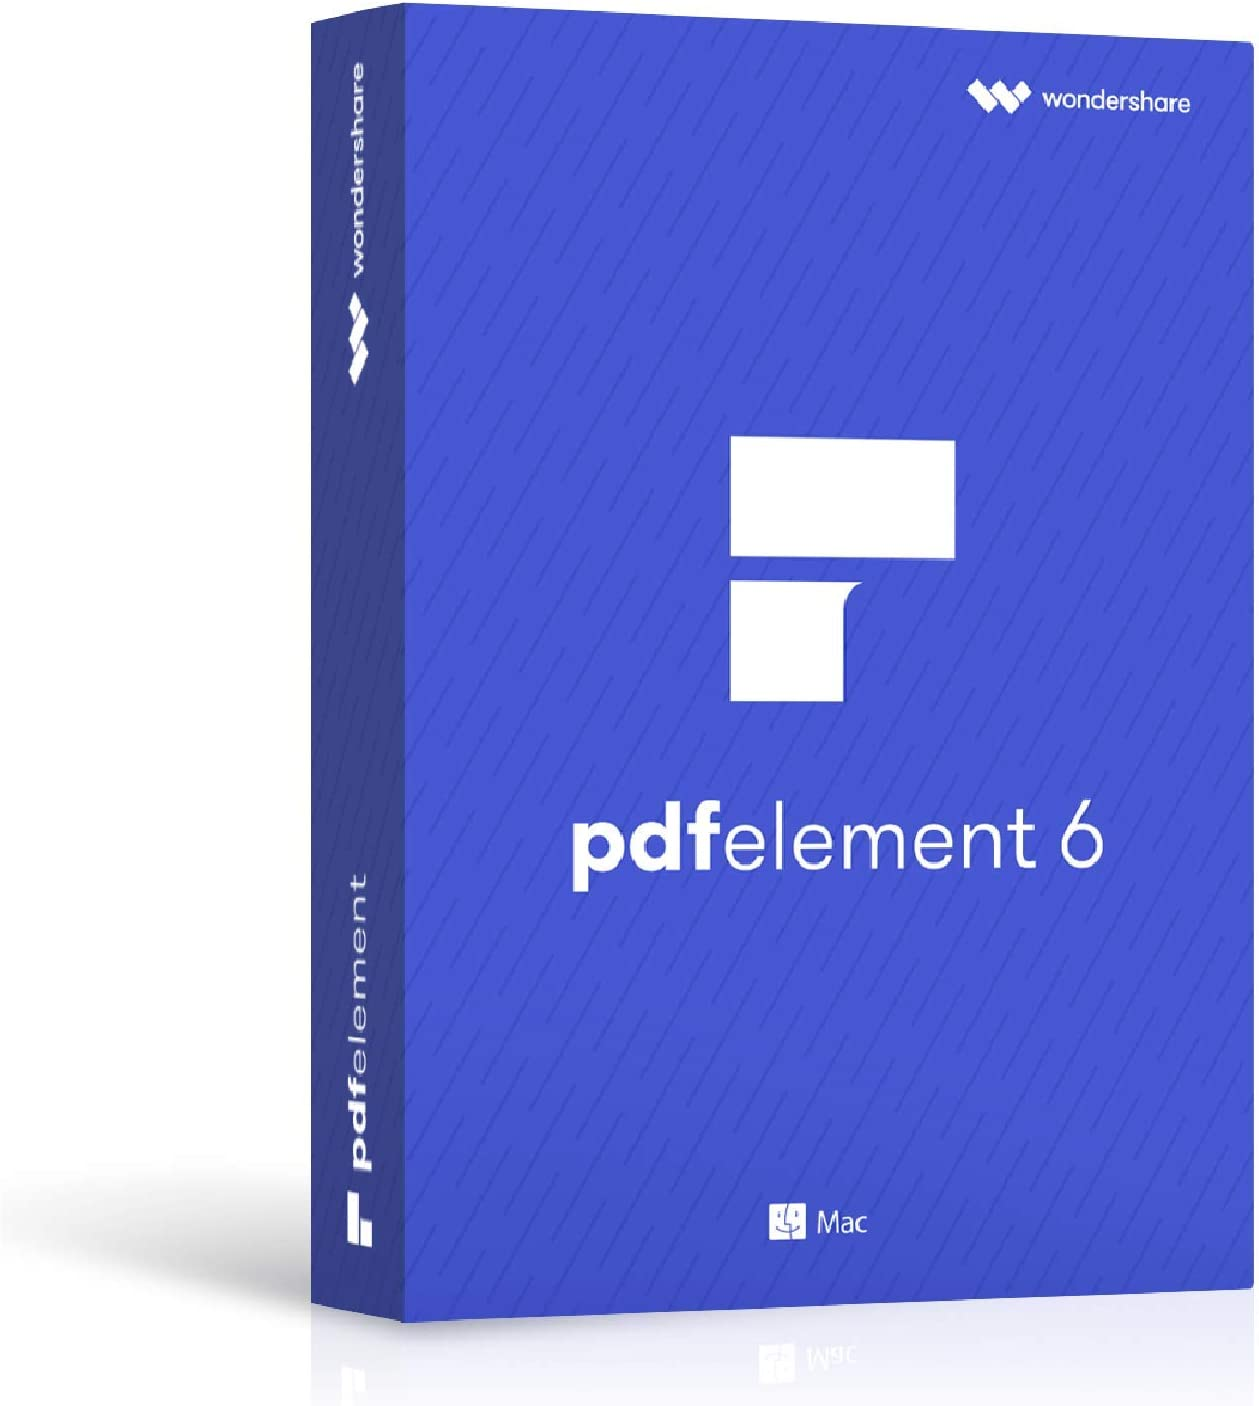 PDFelement New color 6 for Mac - Edit PDFs Download and convert OFFicial store fill